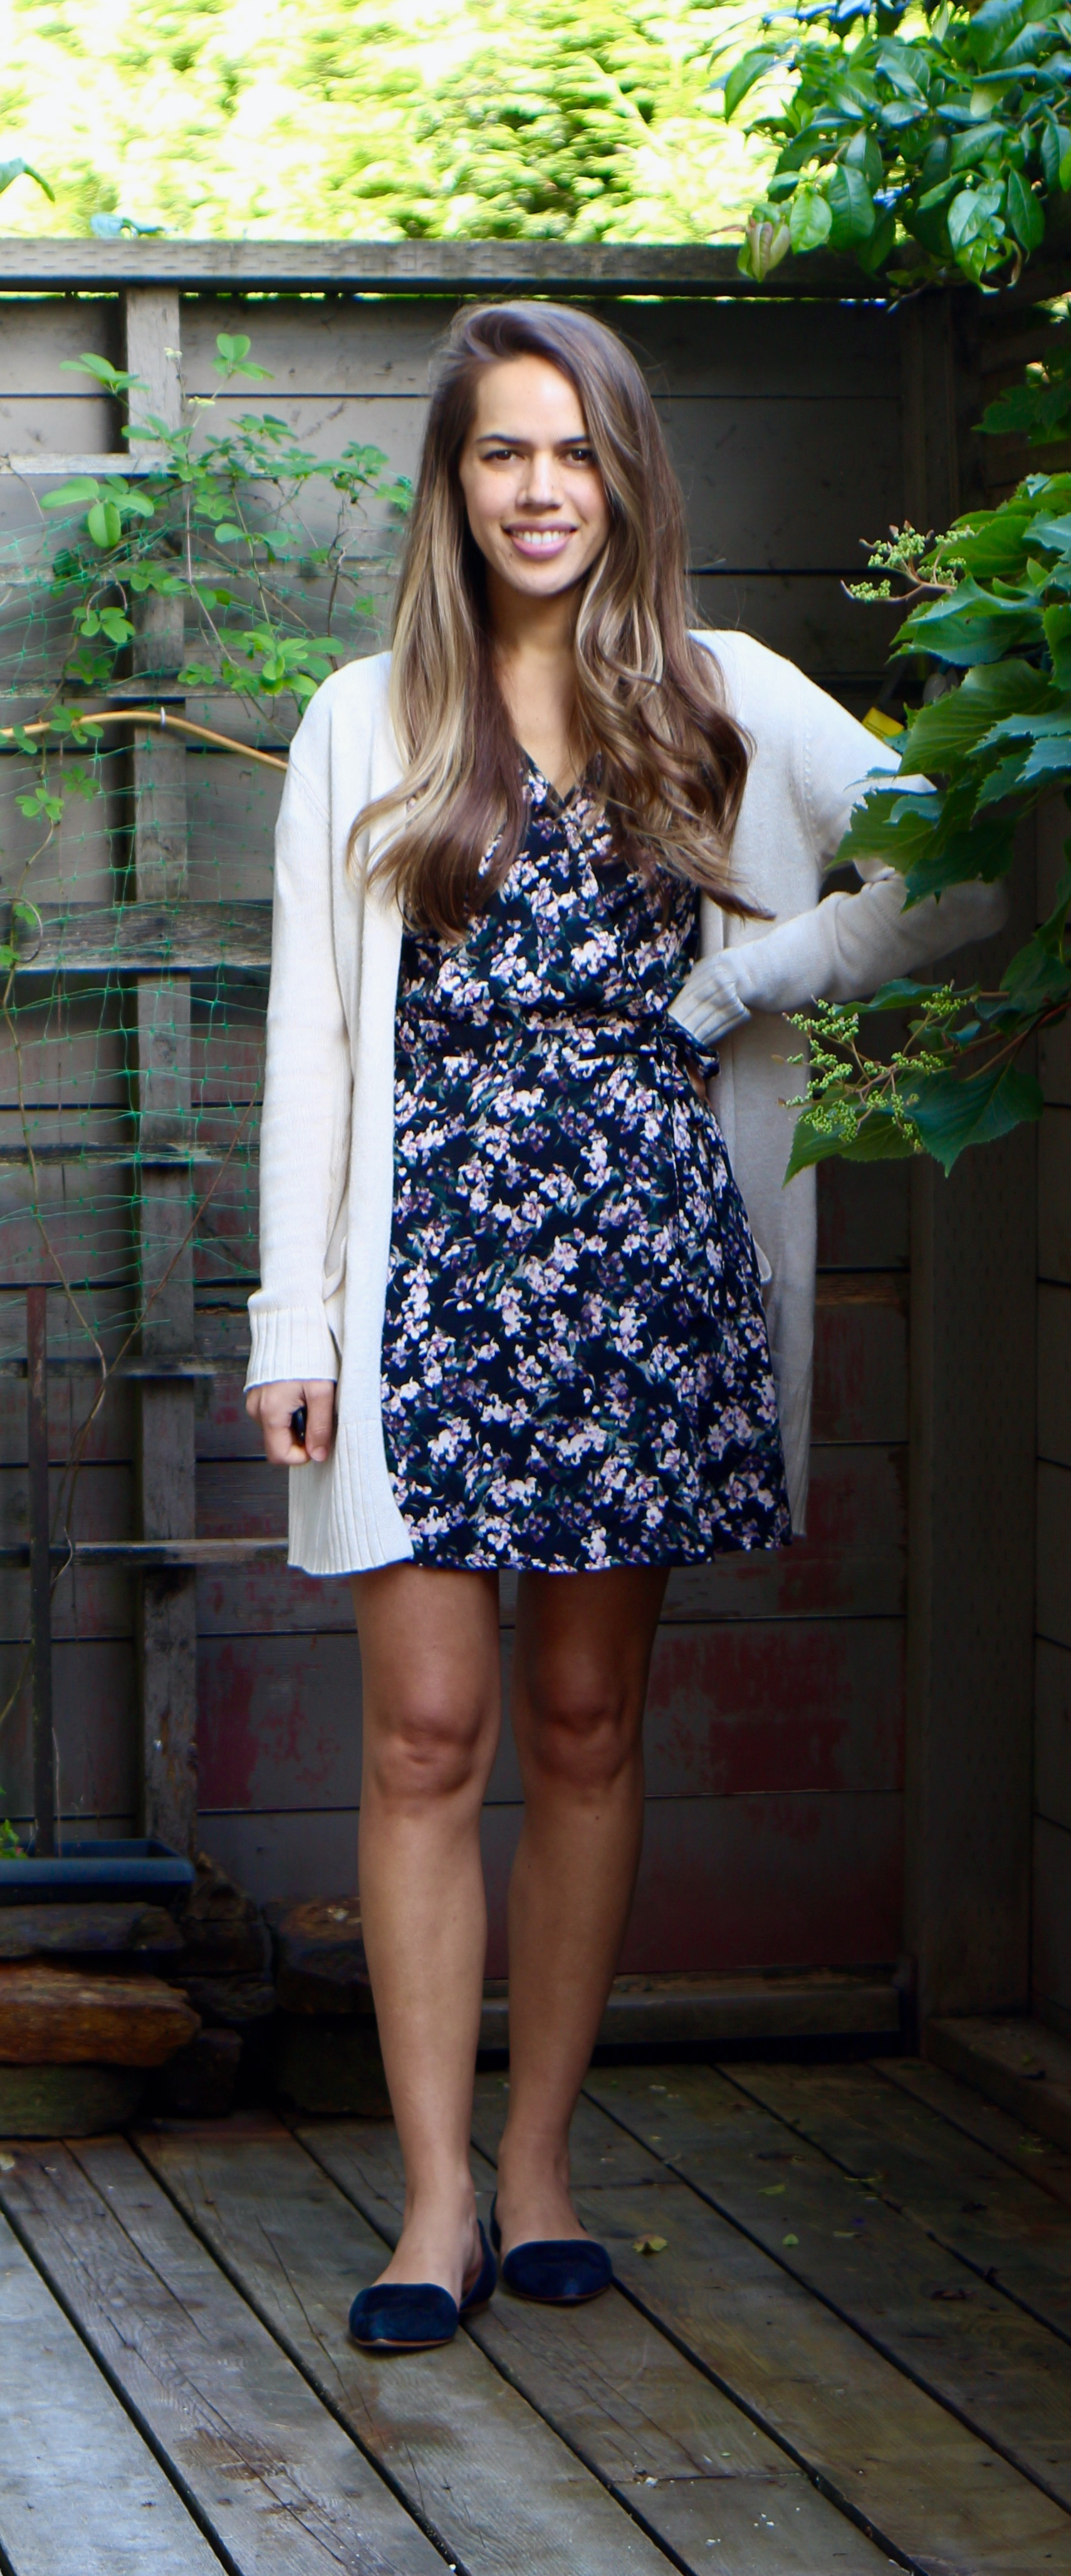 Jules in Flats - Floral Mini Wrap Dress with Cardigan (Business Casual Workwear on a Budget)